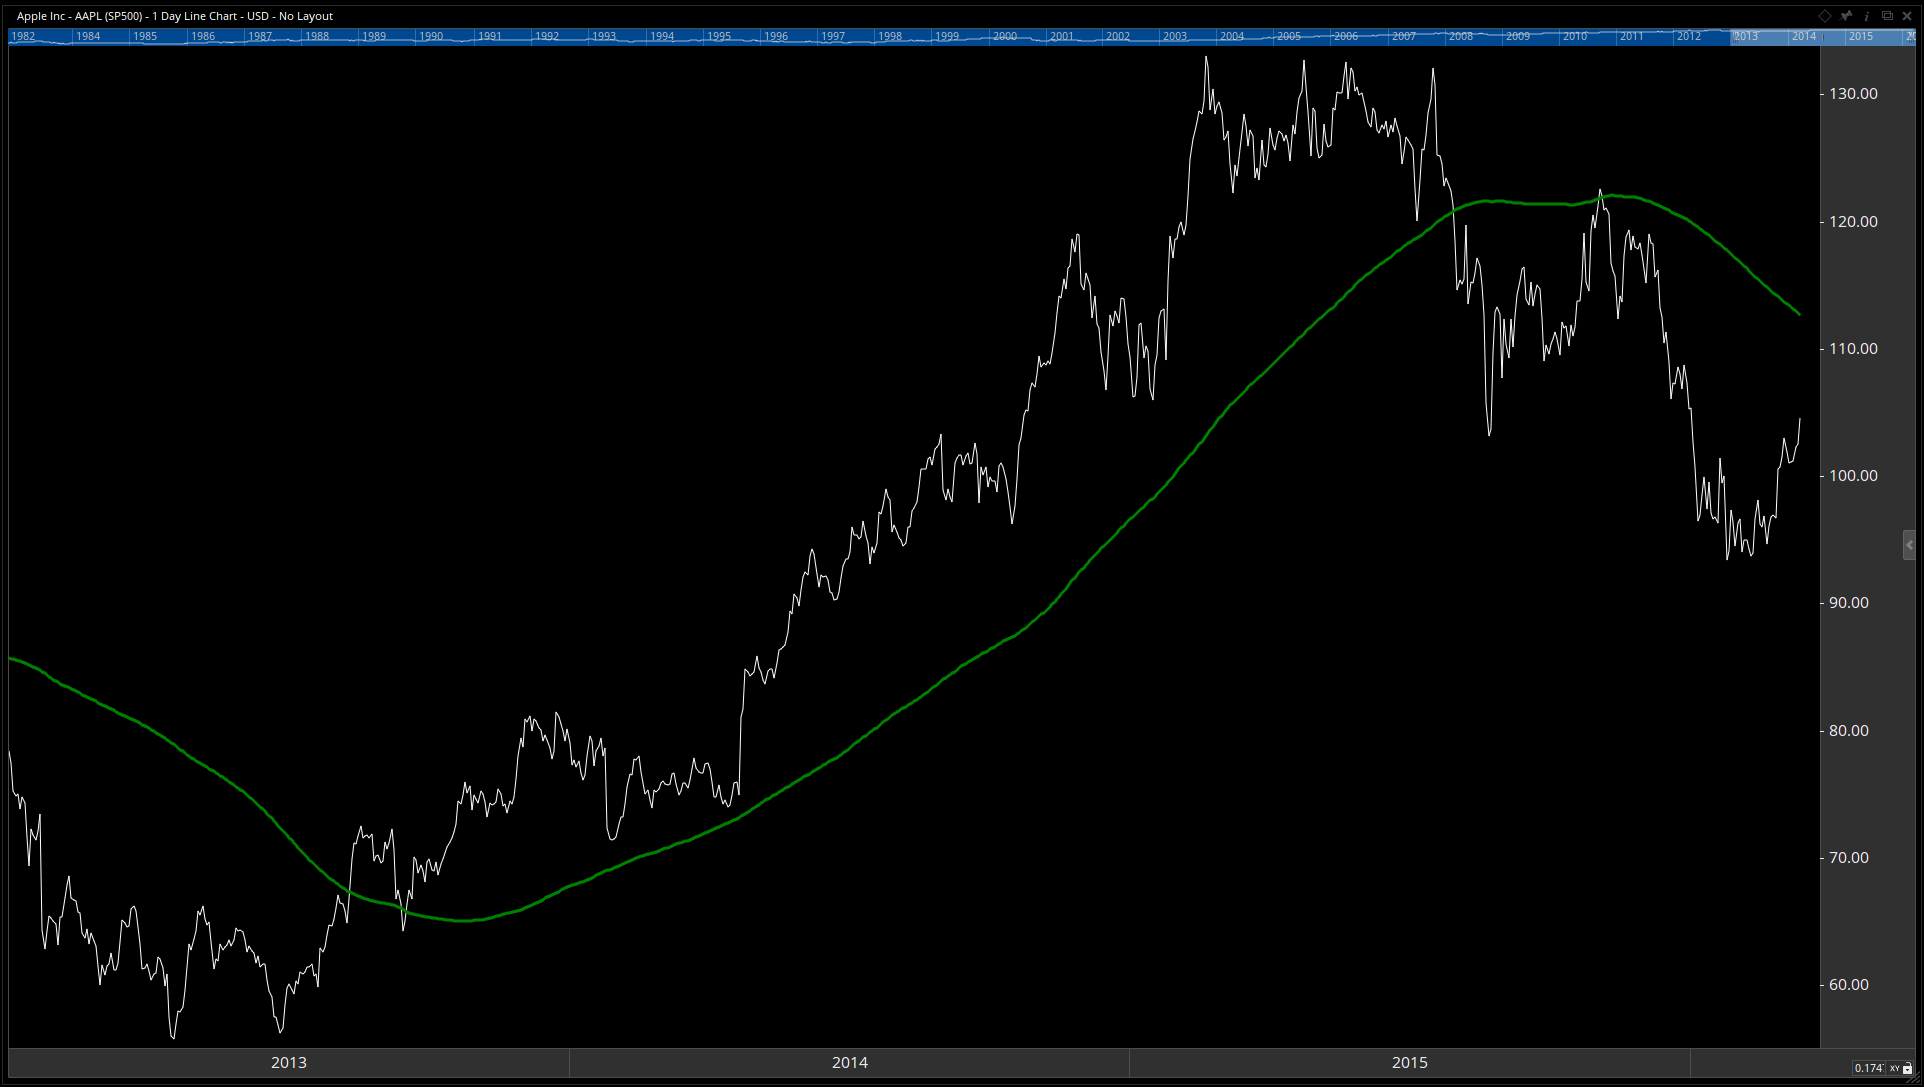 Apple plotted with its 200-day moving average.